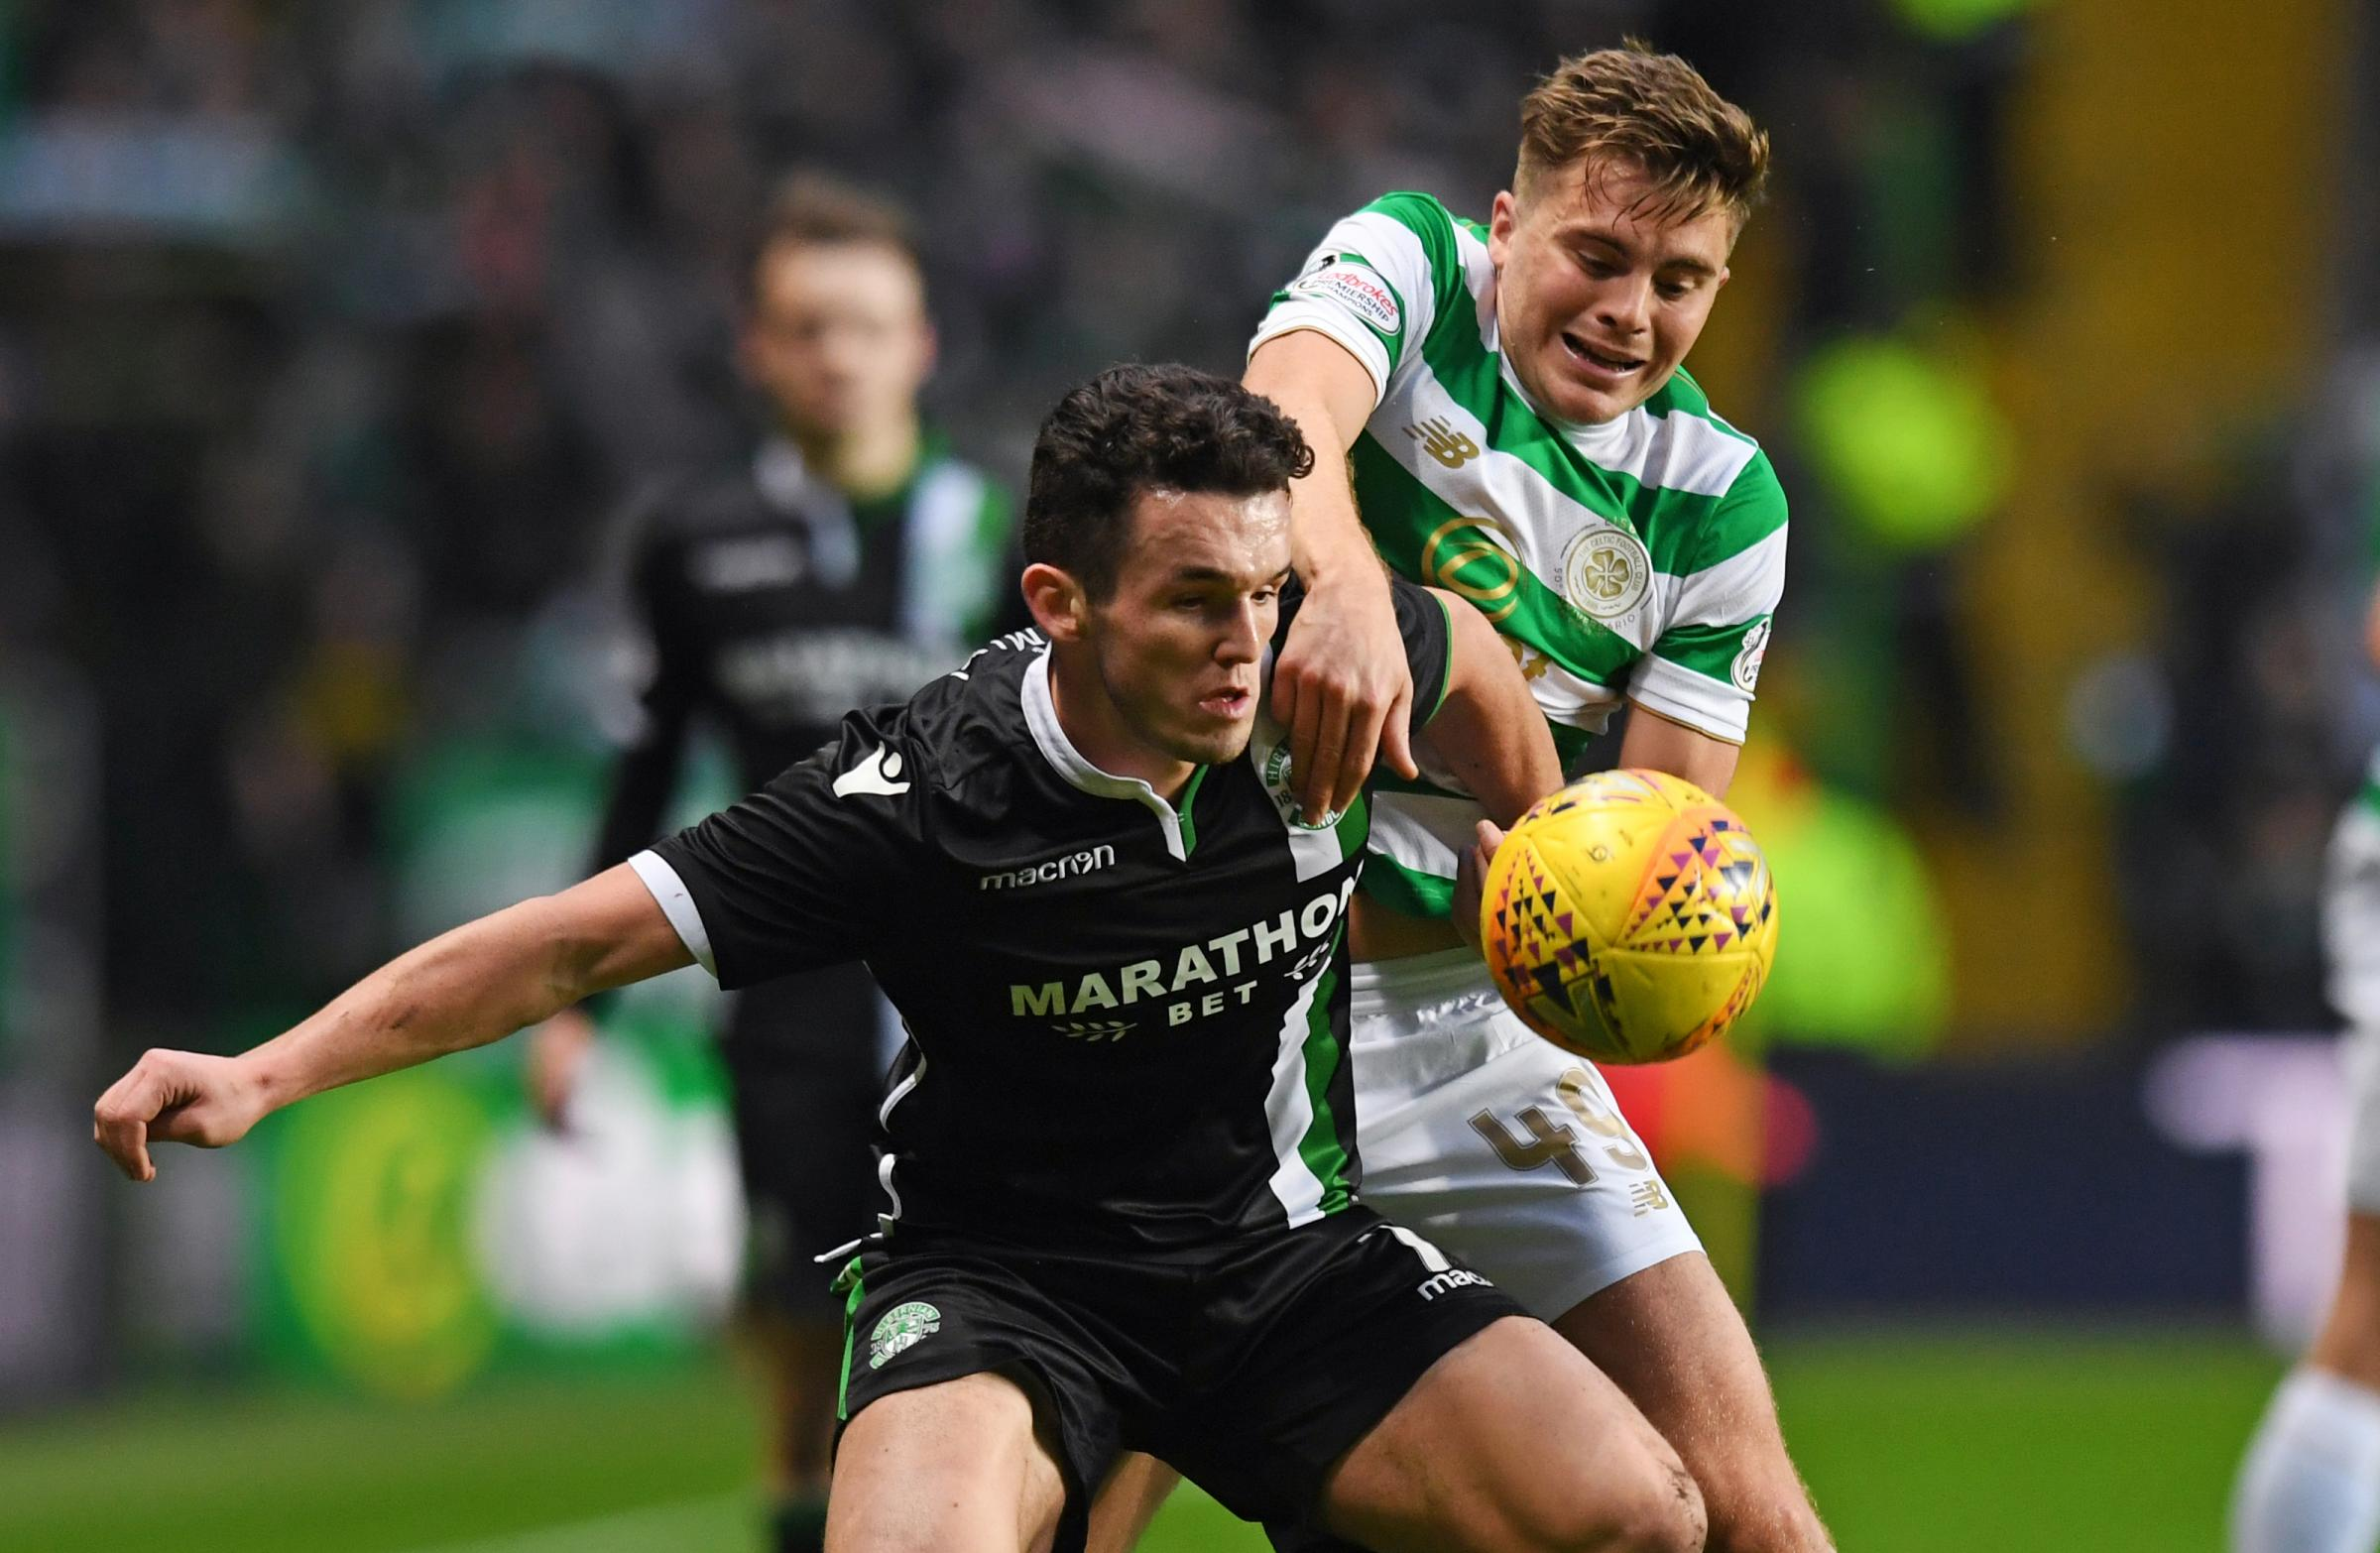 John McGinn has shown with his performances against Celtic that he is comfortable at that level, says John Hartson